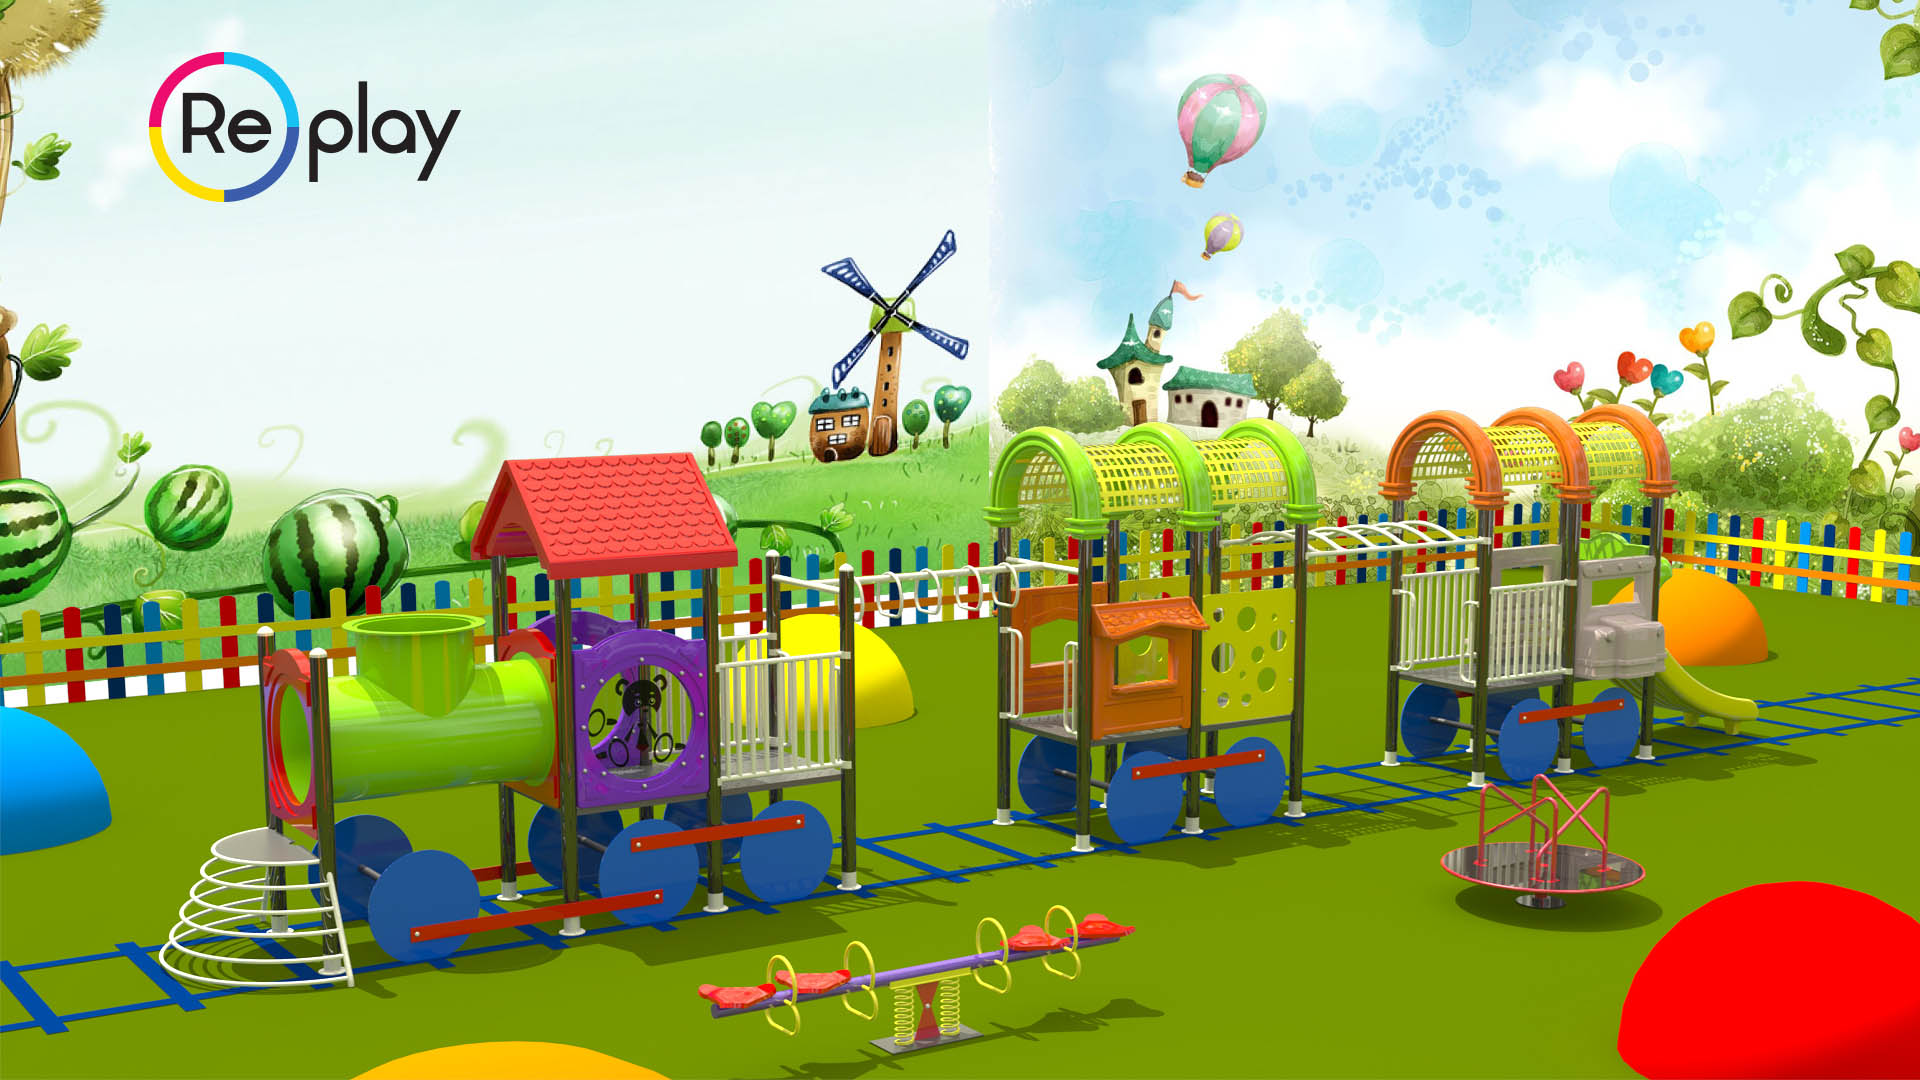 Best Customized and Themed Playground Ideas, Designs